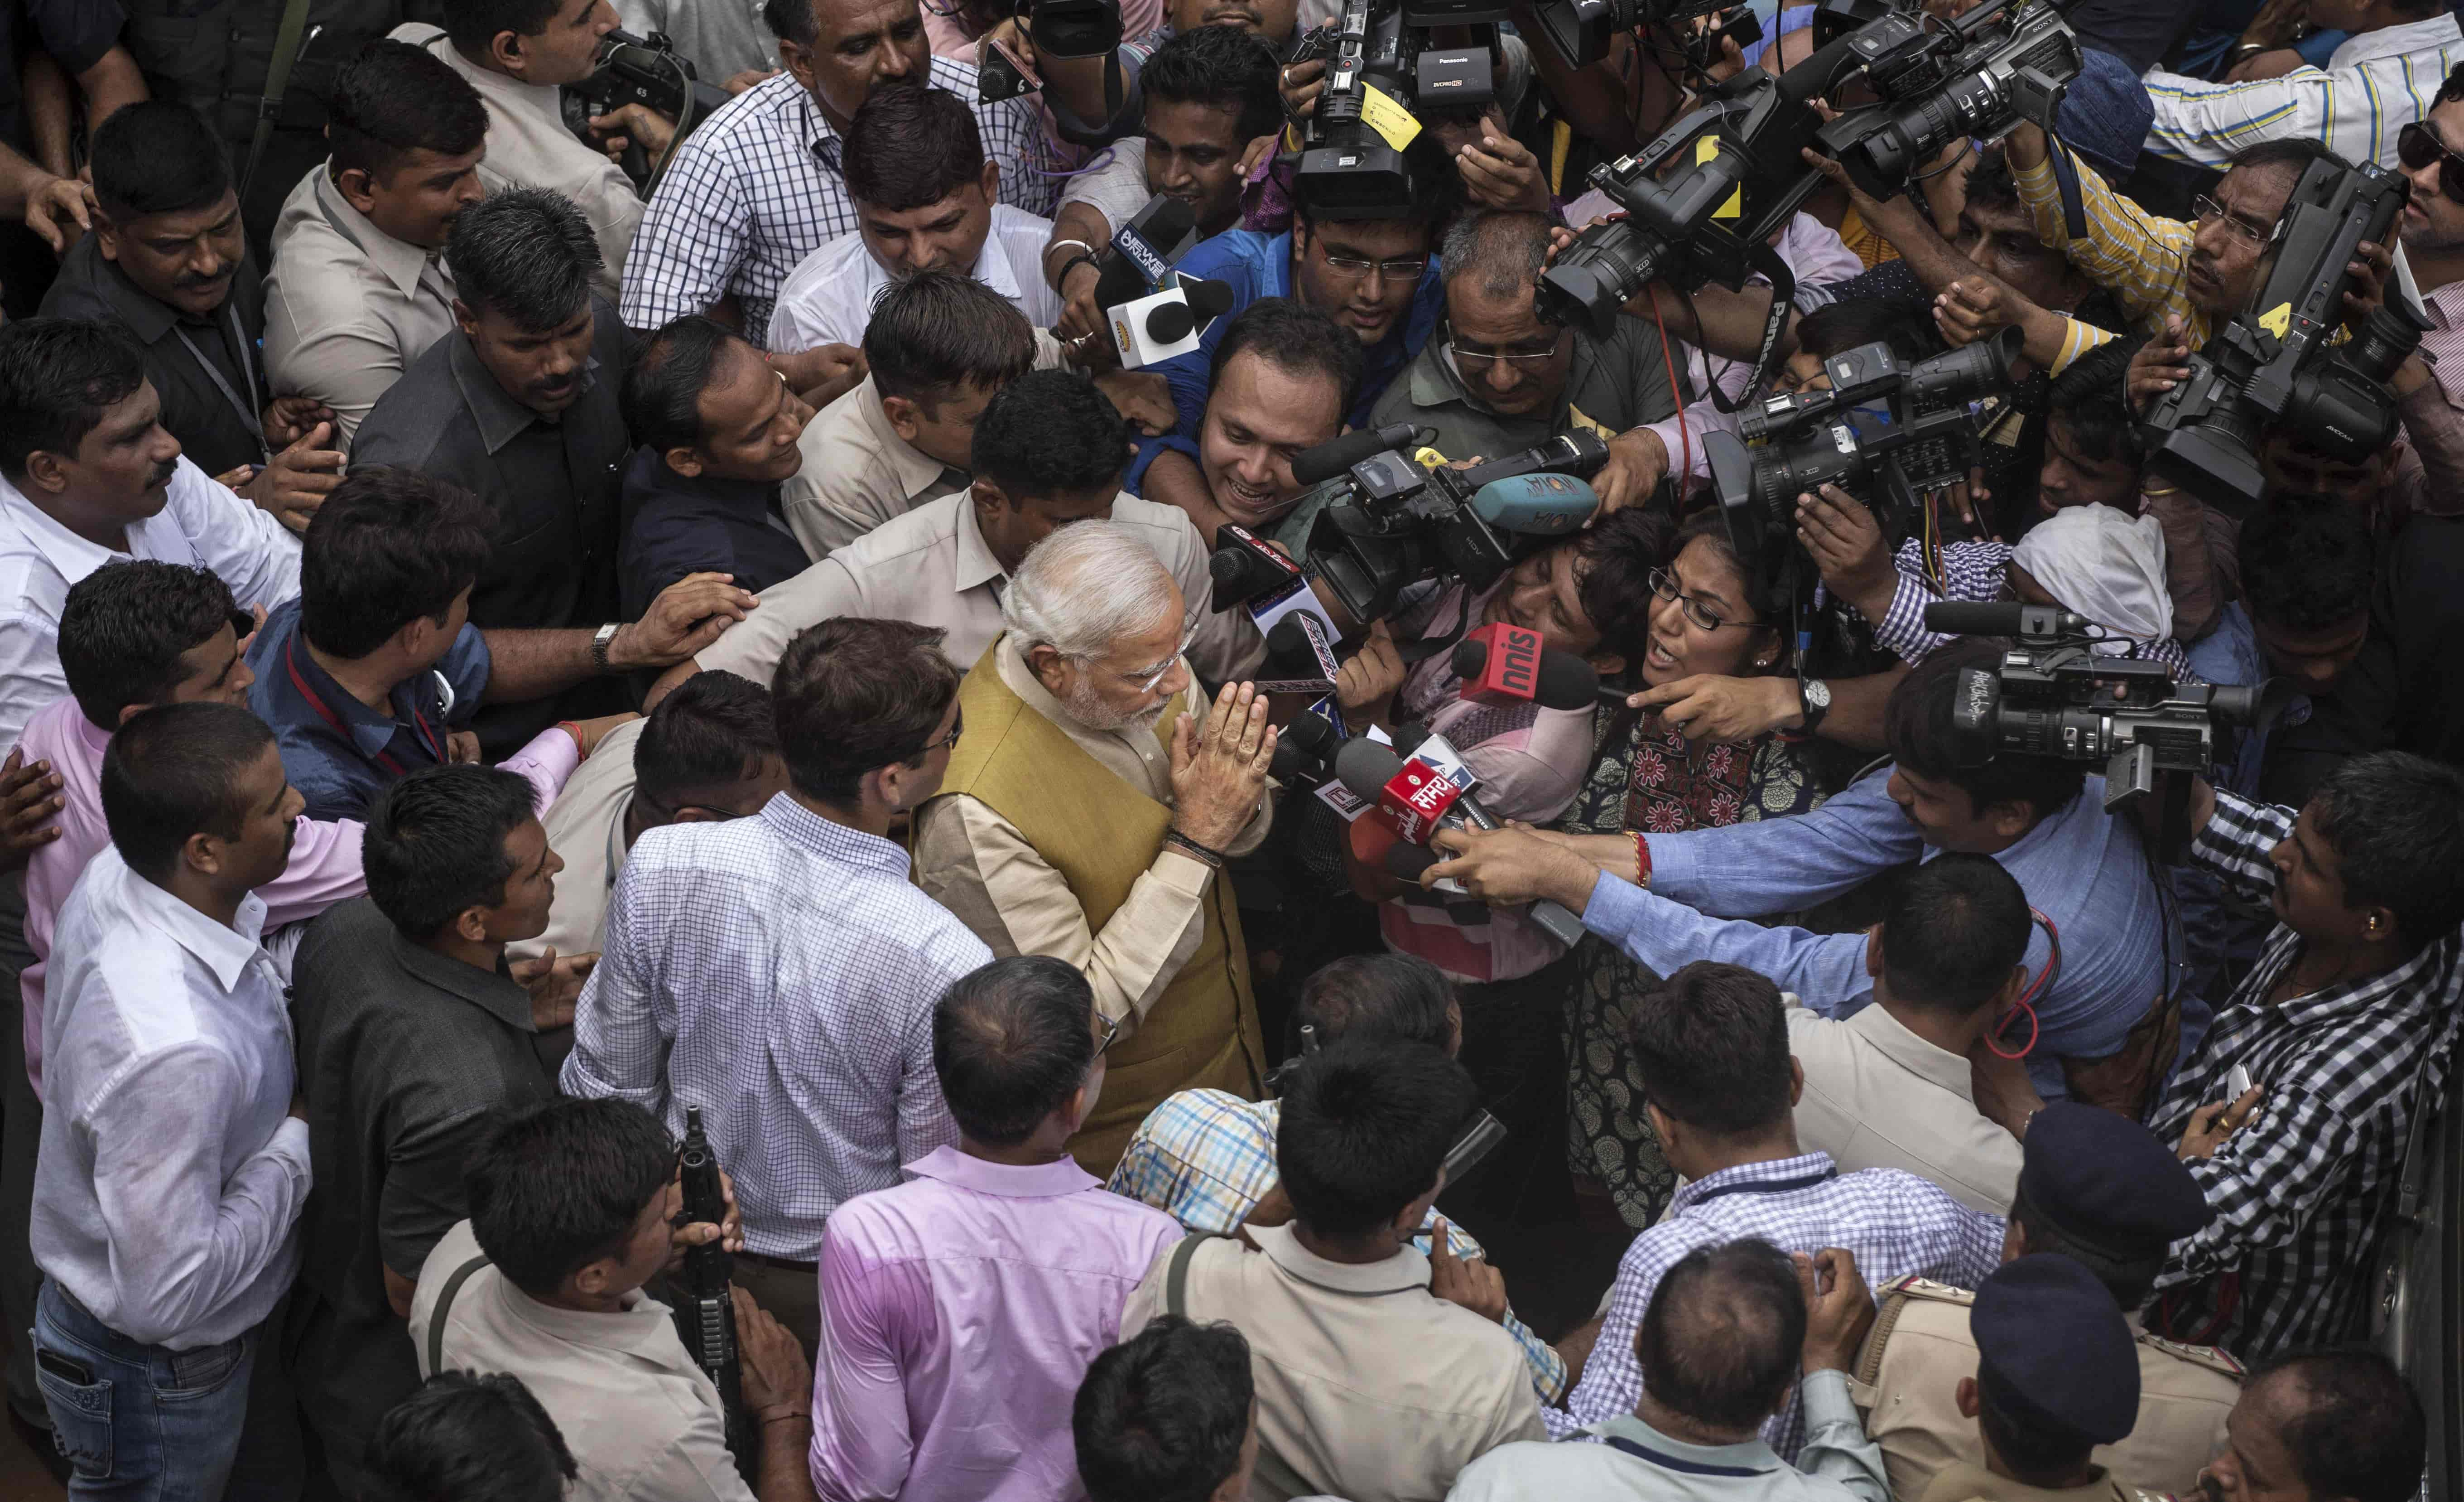 India's Narendra Modi mobbed in a press pack (Photo: Kevin Frayer/Getty)